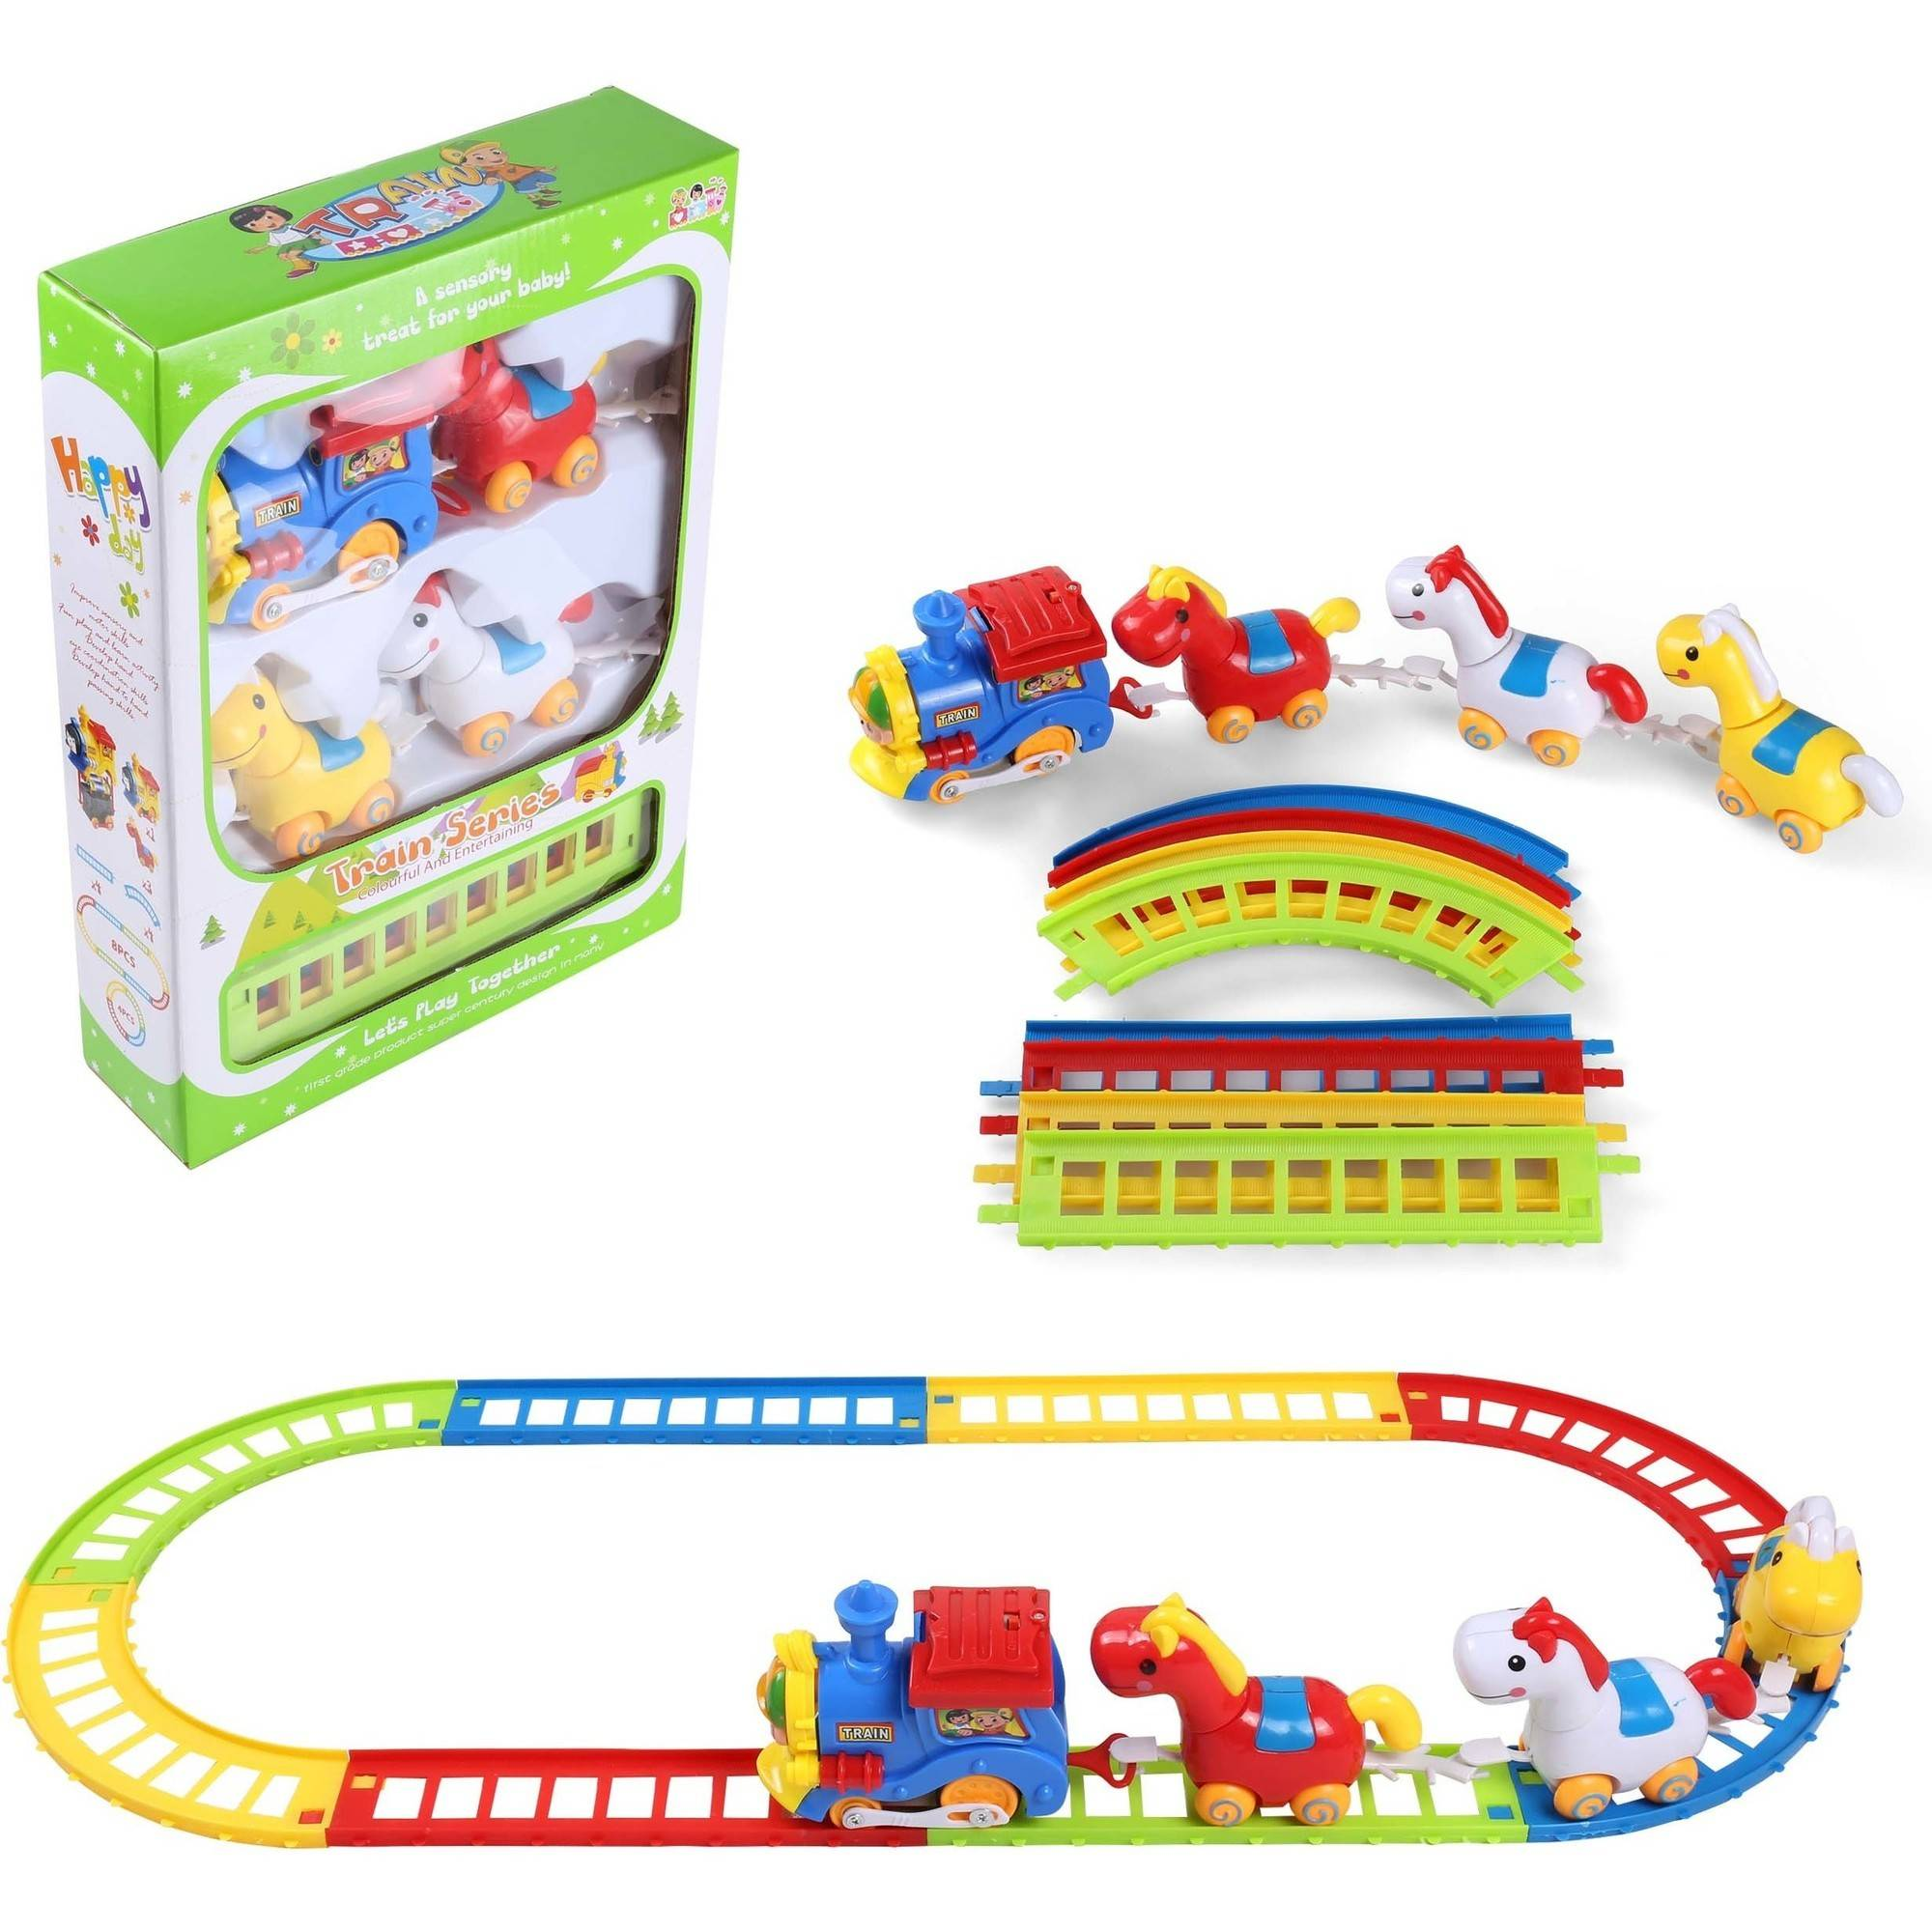 12-Piece Battery Operated Train, Animal Friends and Track Play Set